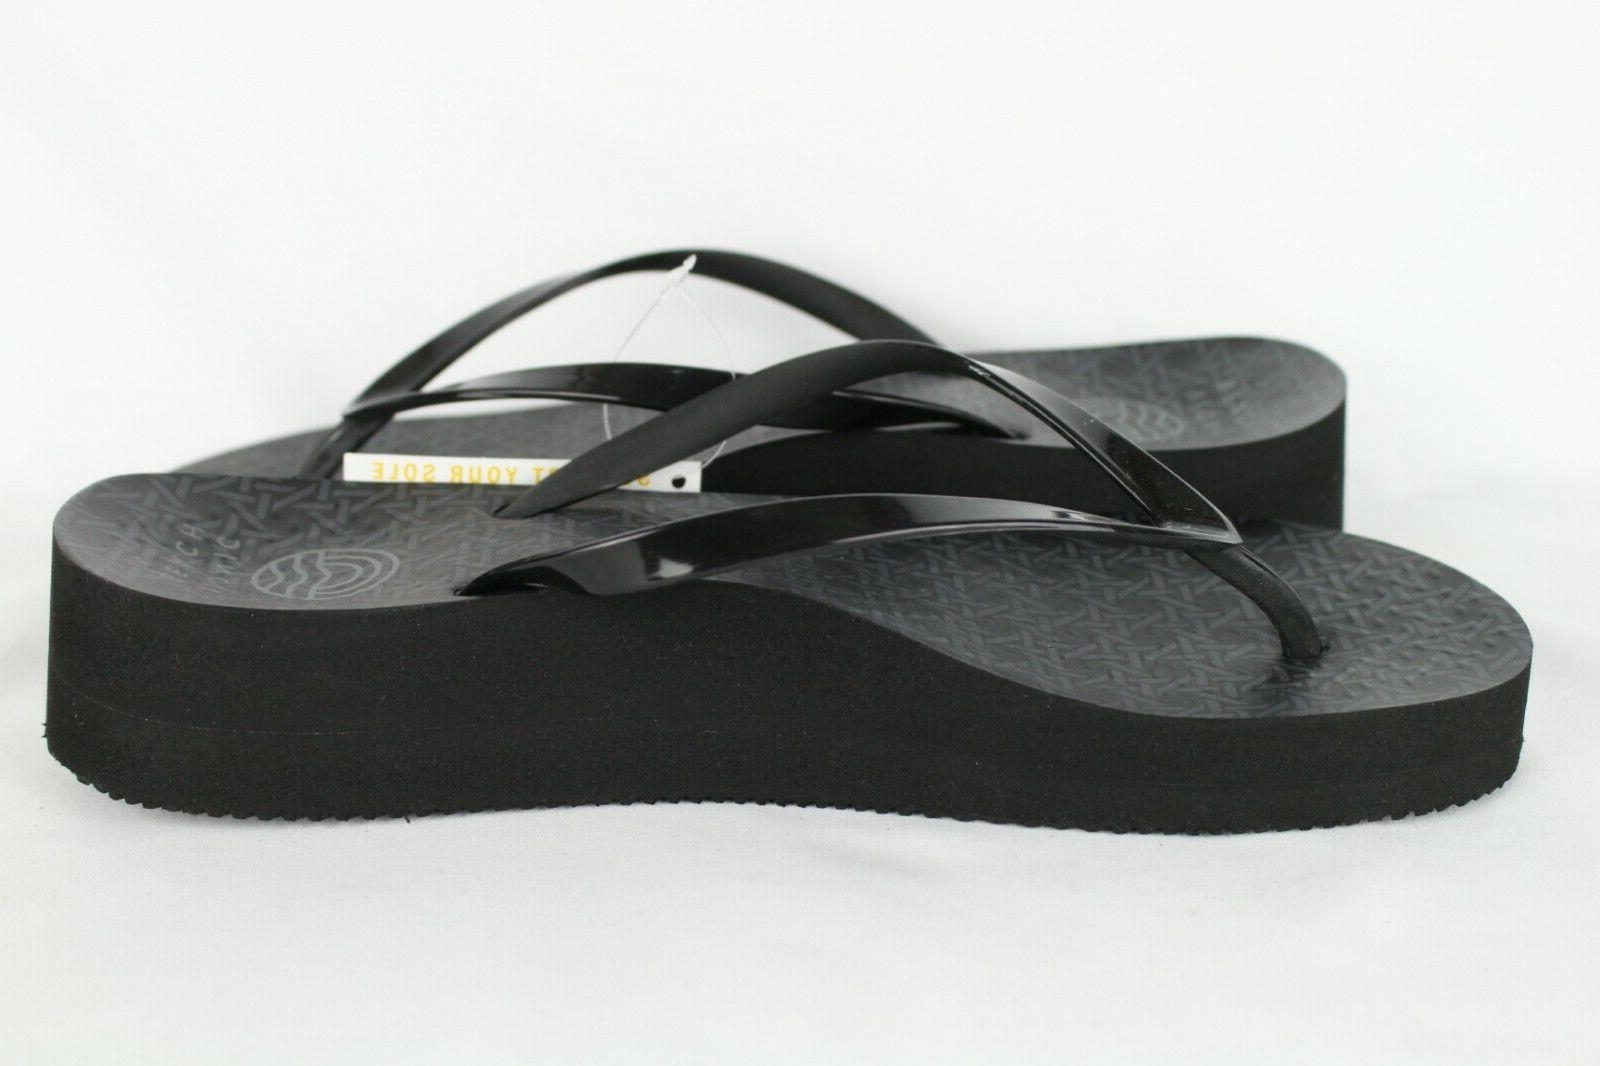 New Vionic Women's Coogee Wedge Flip Flop 8 Black